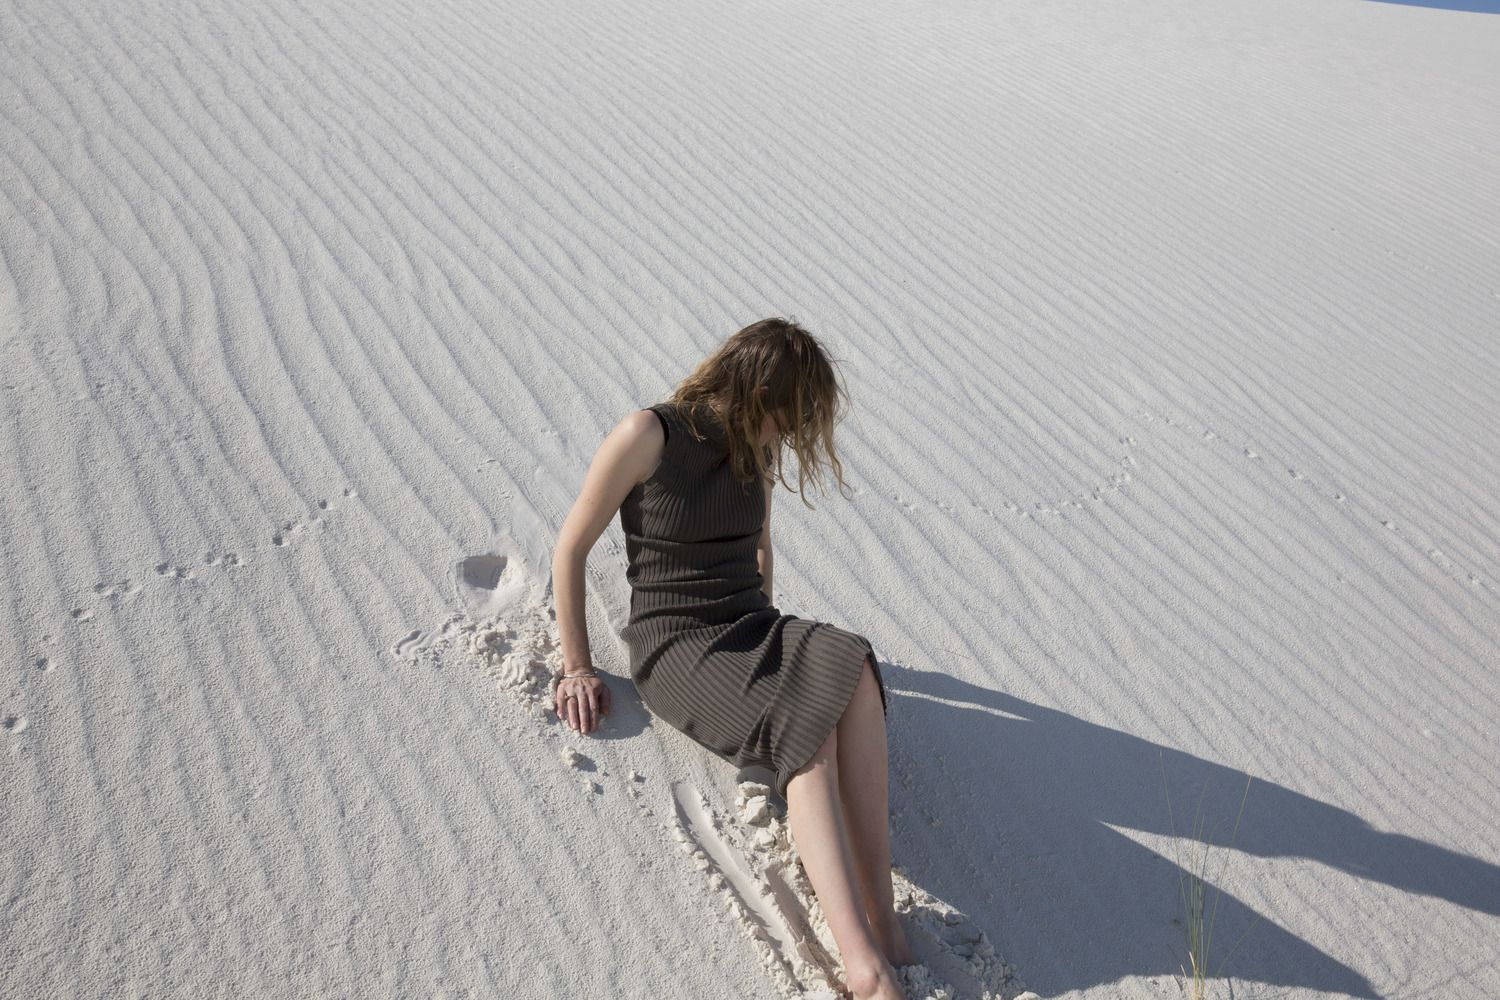 PHOTOGRAPHER | Greta van der Star FEATURING | Kate Megaw of Penny Sage and Sherie Muijs at White Sands in New Mexico